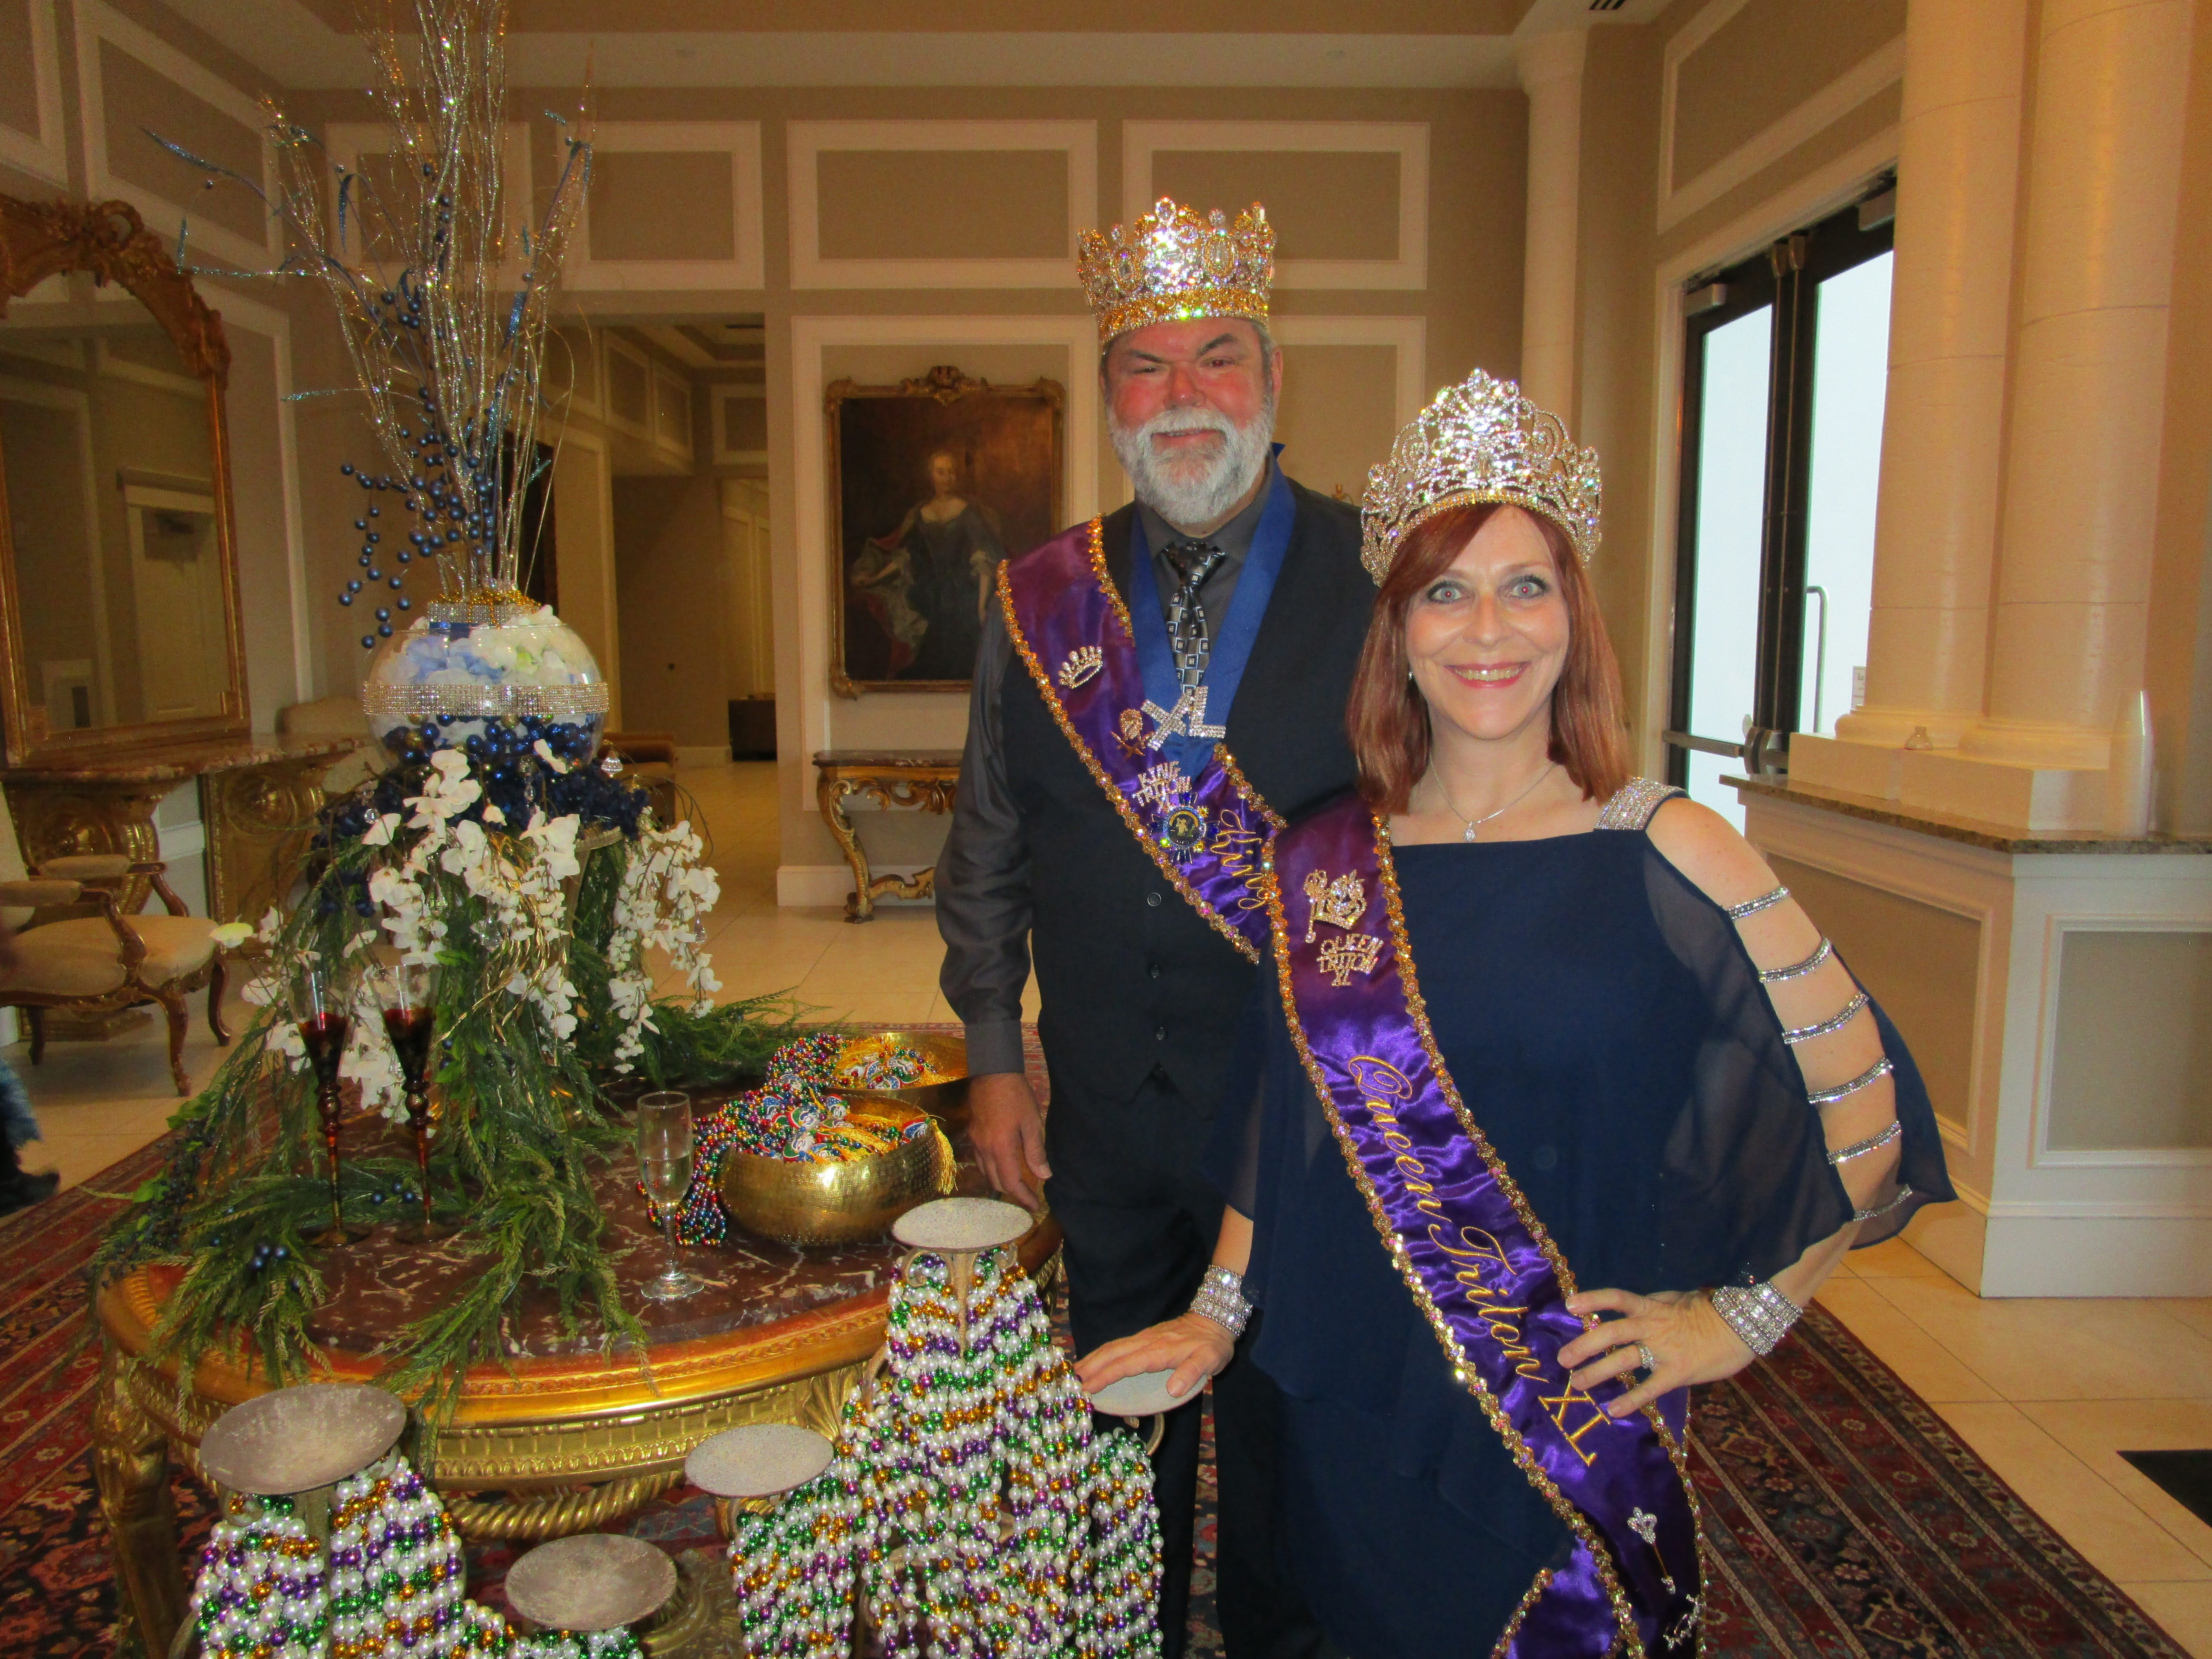 Who are Krewe of Triton's new king and queen?